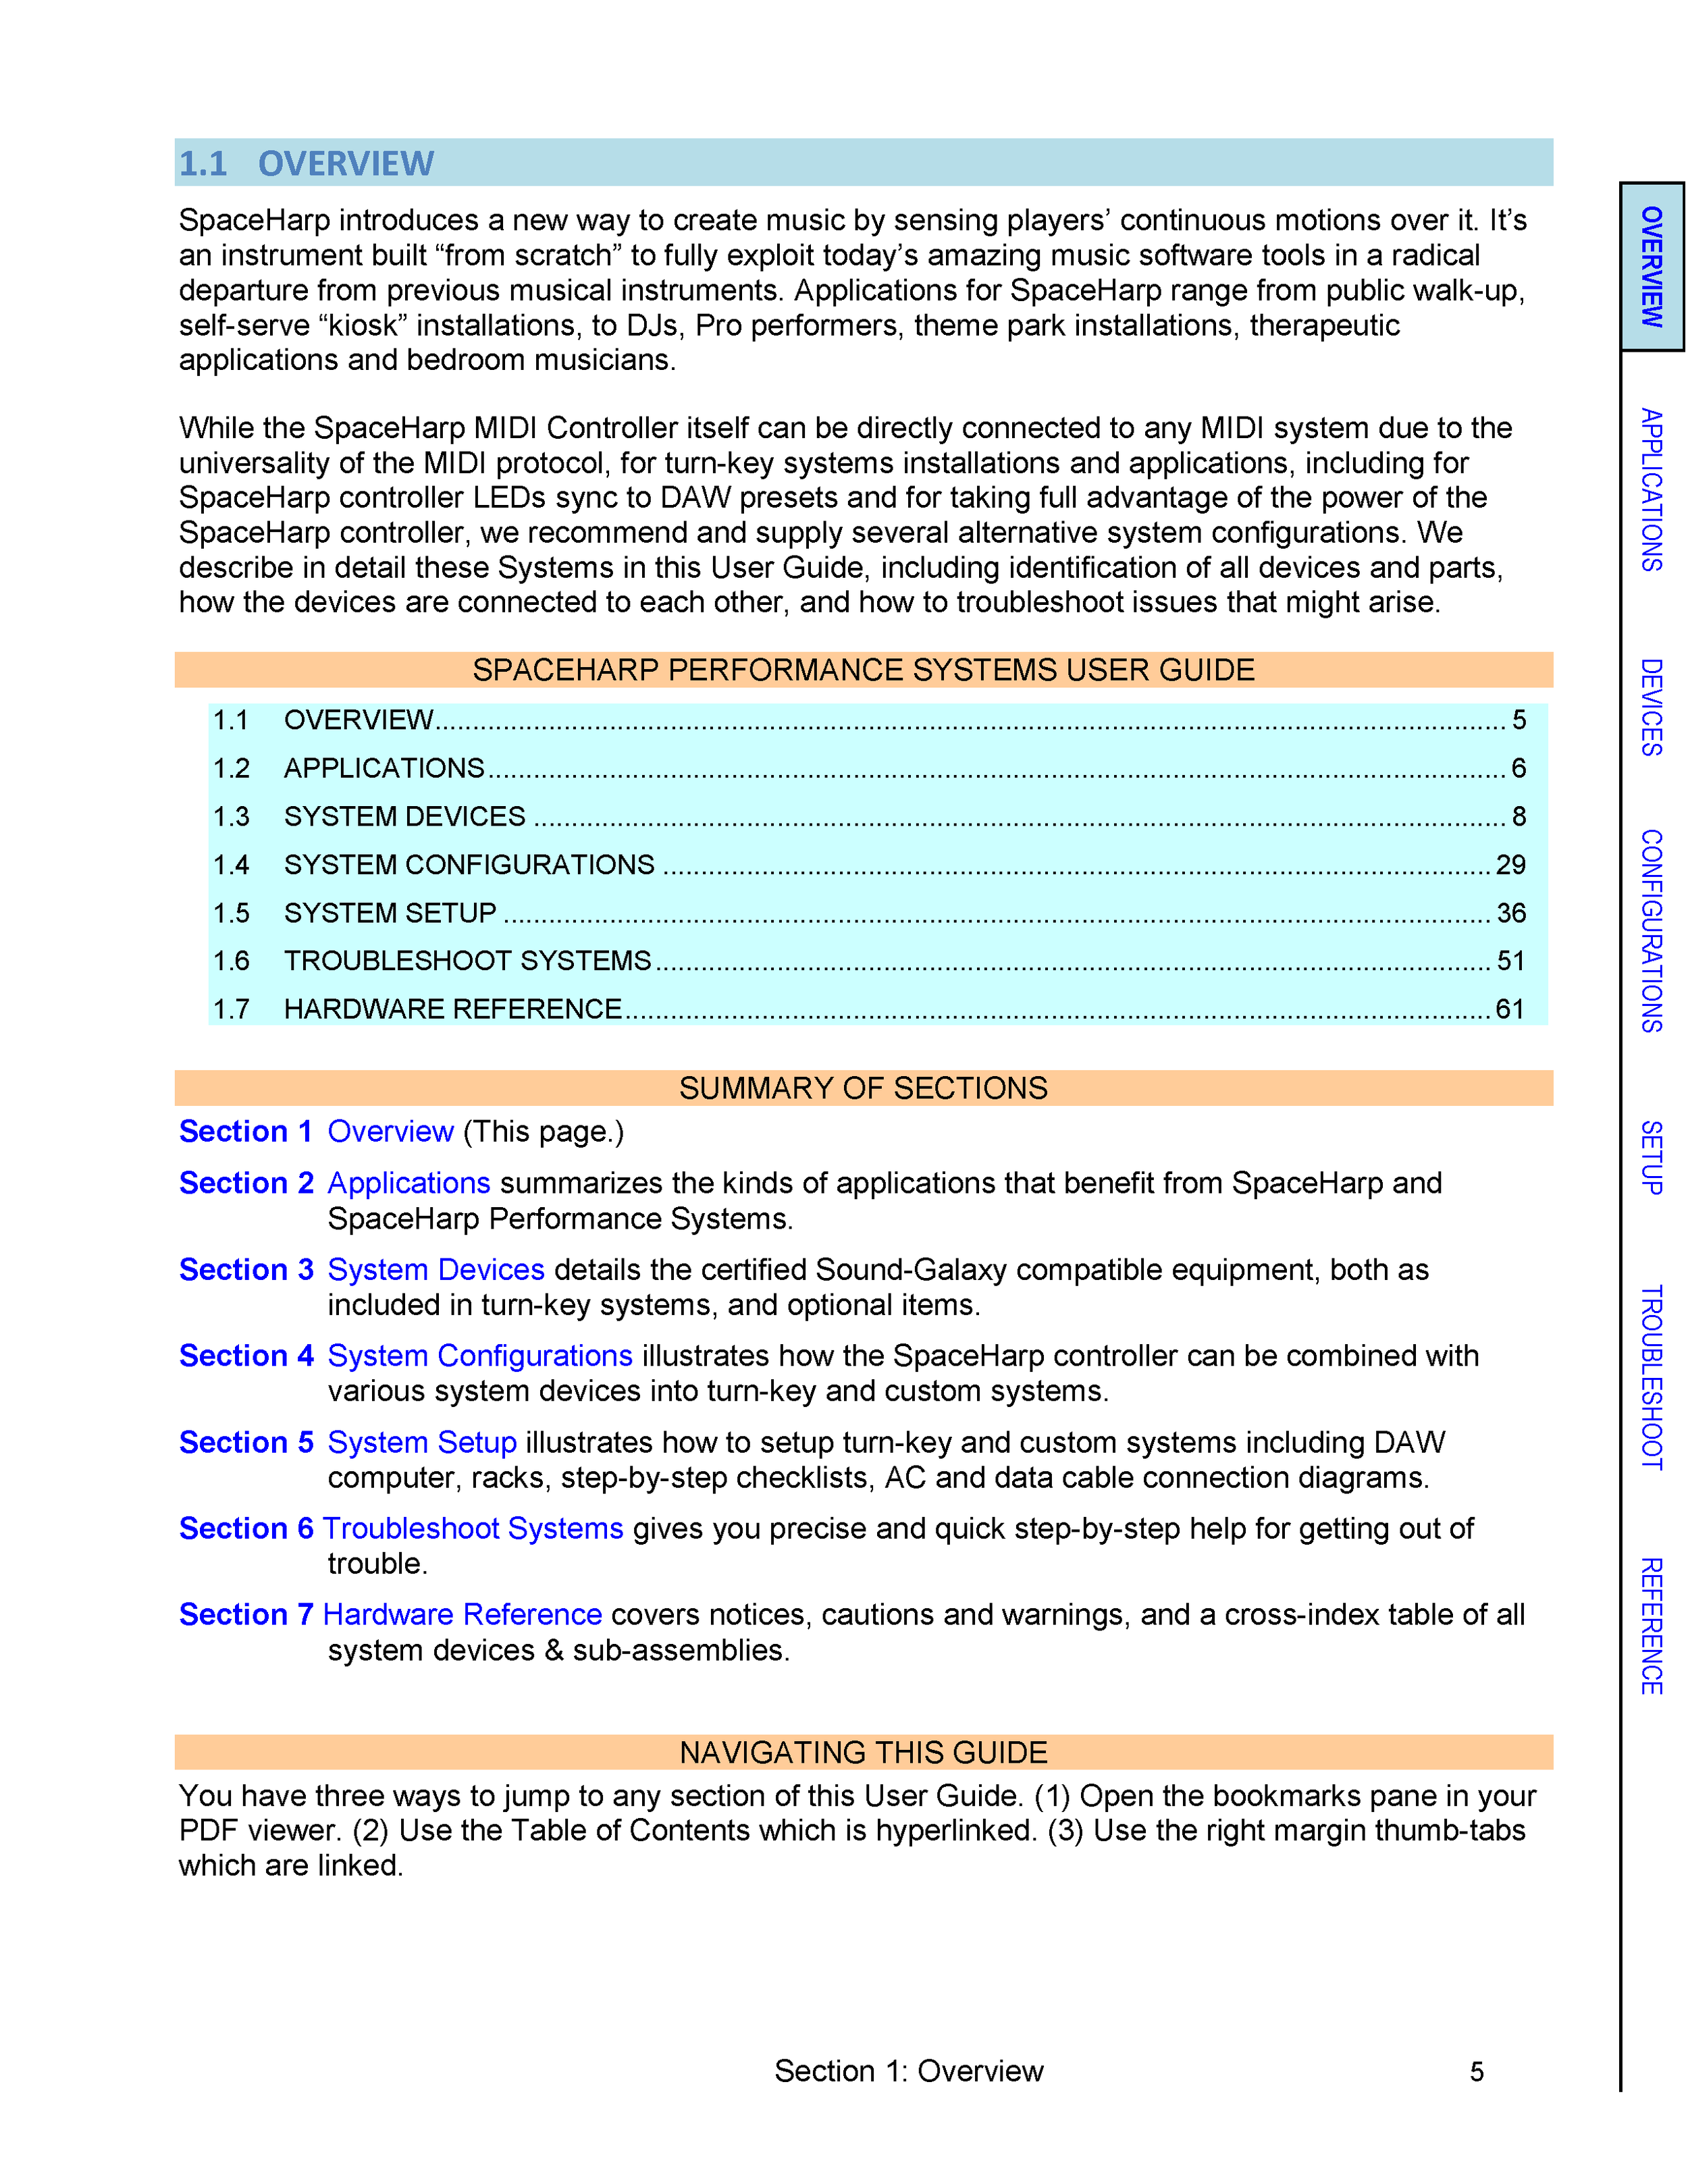 SpaceHarp_Systems_User_Guide_Oct-9th-2017_released_Page_05.png